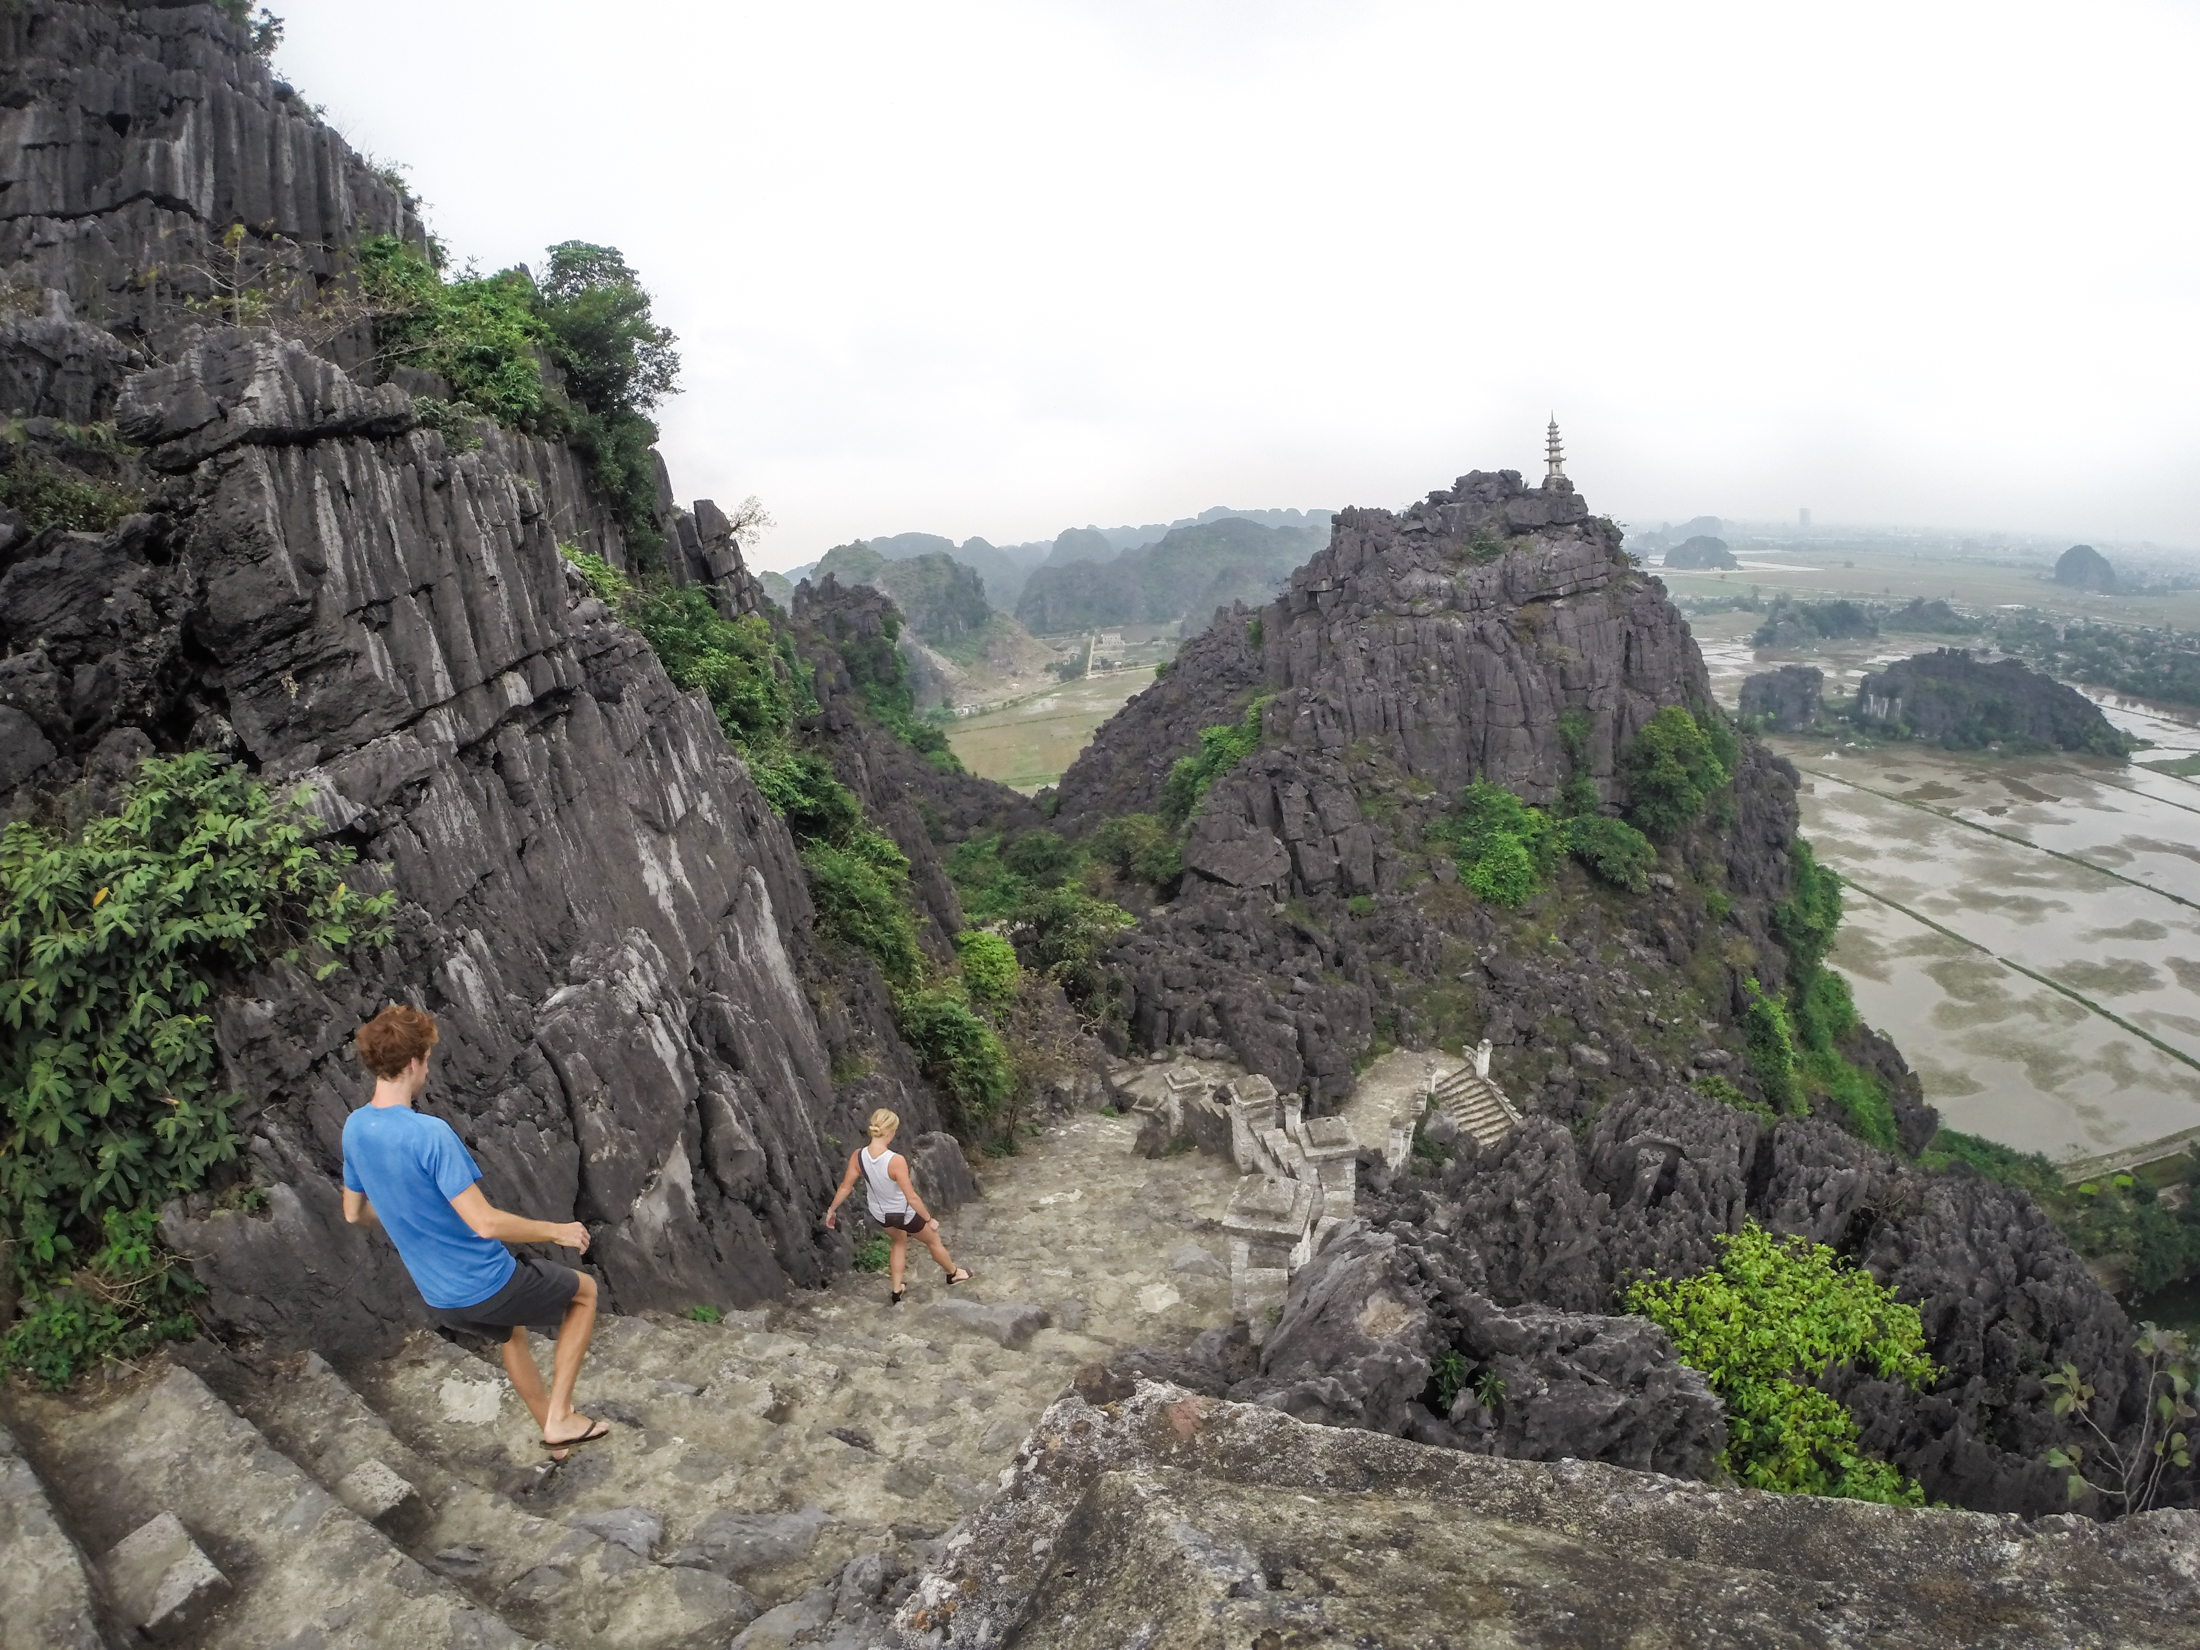 David and Kelsey Tilley on a hike in Vietnam near the Mua Caves.